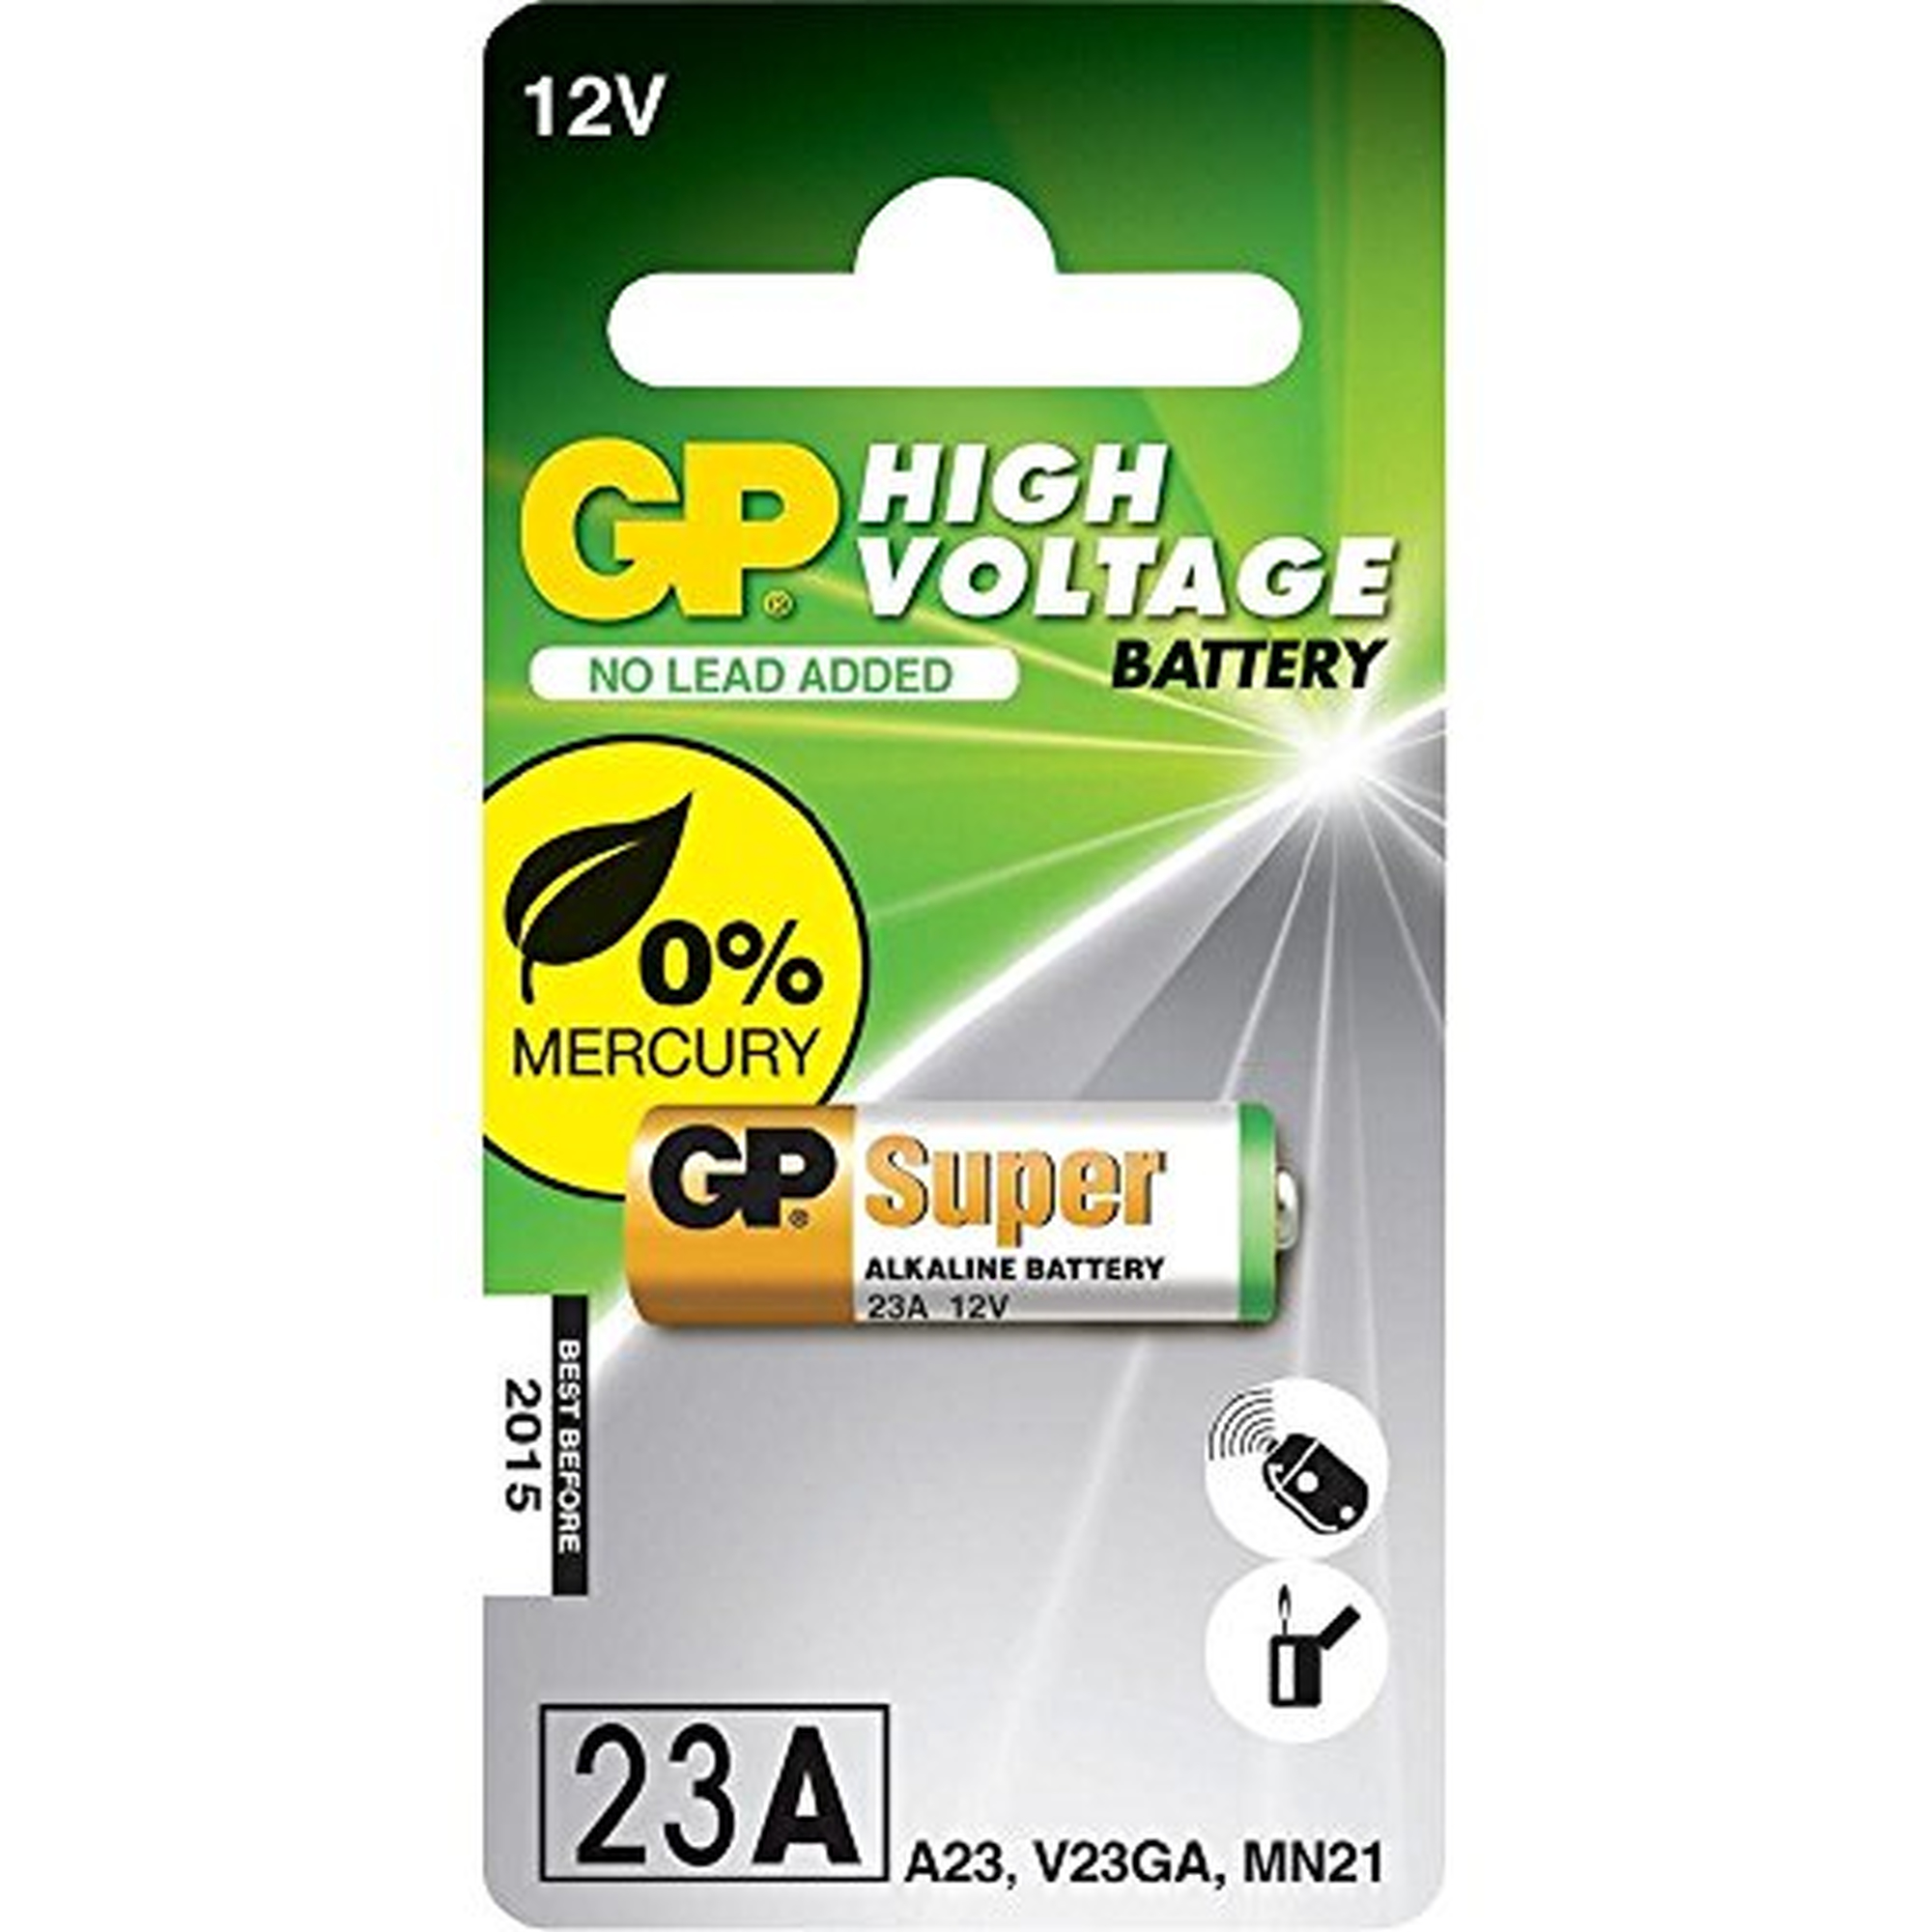 GP Batterie Alkaline, 23A, MS21, 12V